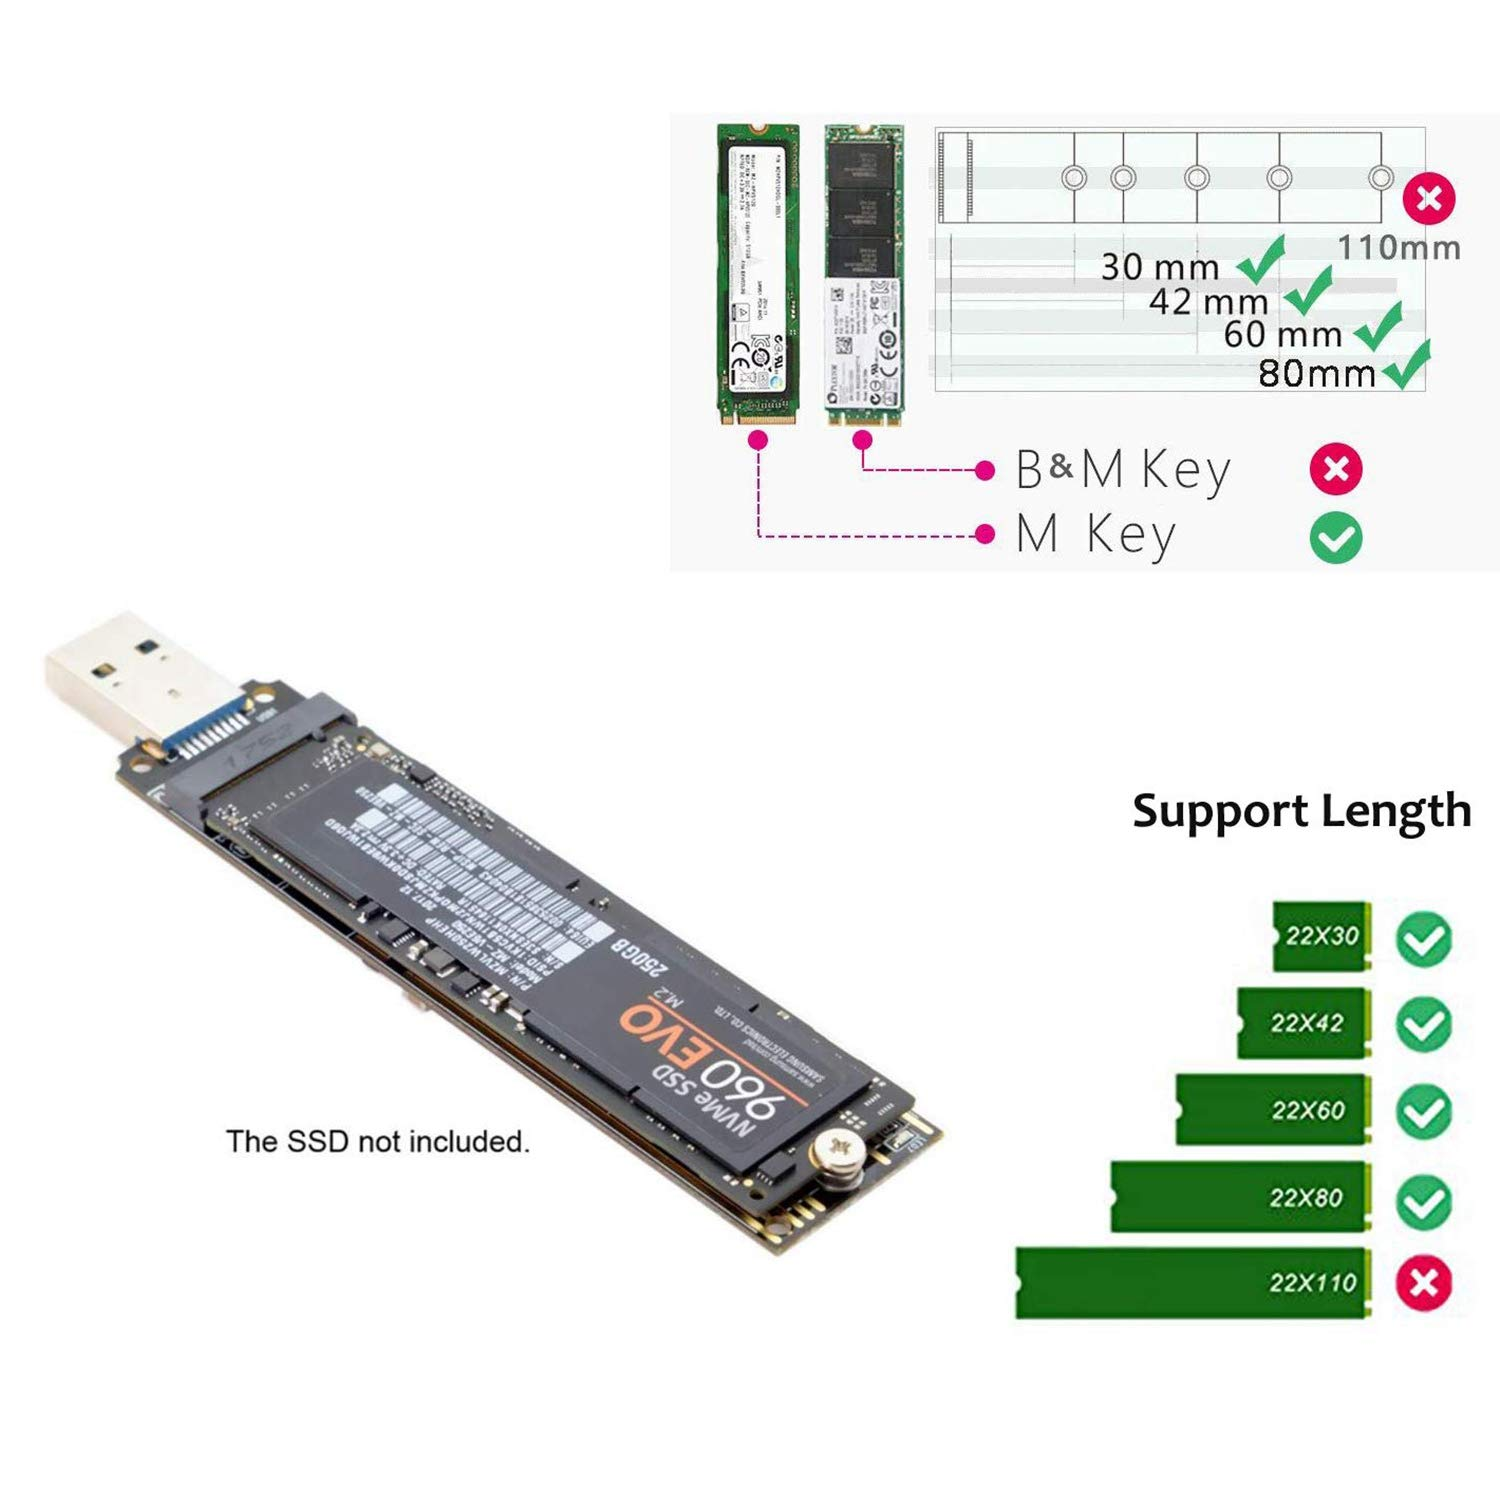 10 WOVELOT Nvme a Usb3.0 Adaptador USB a M2 Ssd Clave M Tarjeta de Alto Rendimiento 10 Gbps Port/áTil para Windows XP 7//8 Os